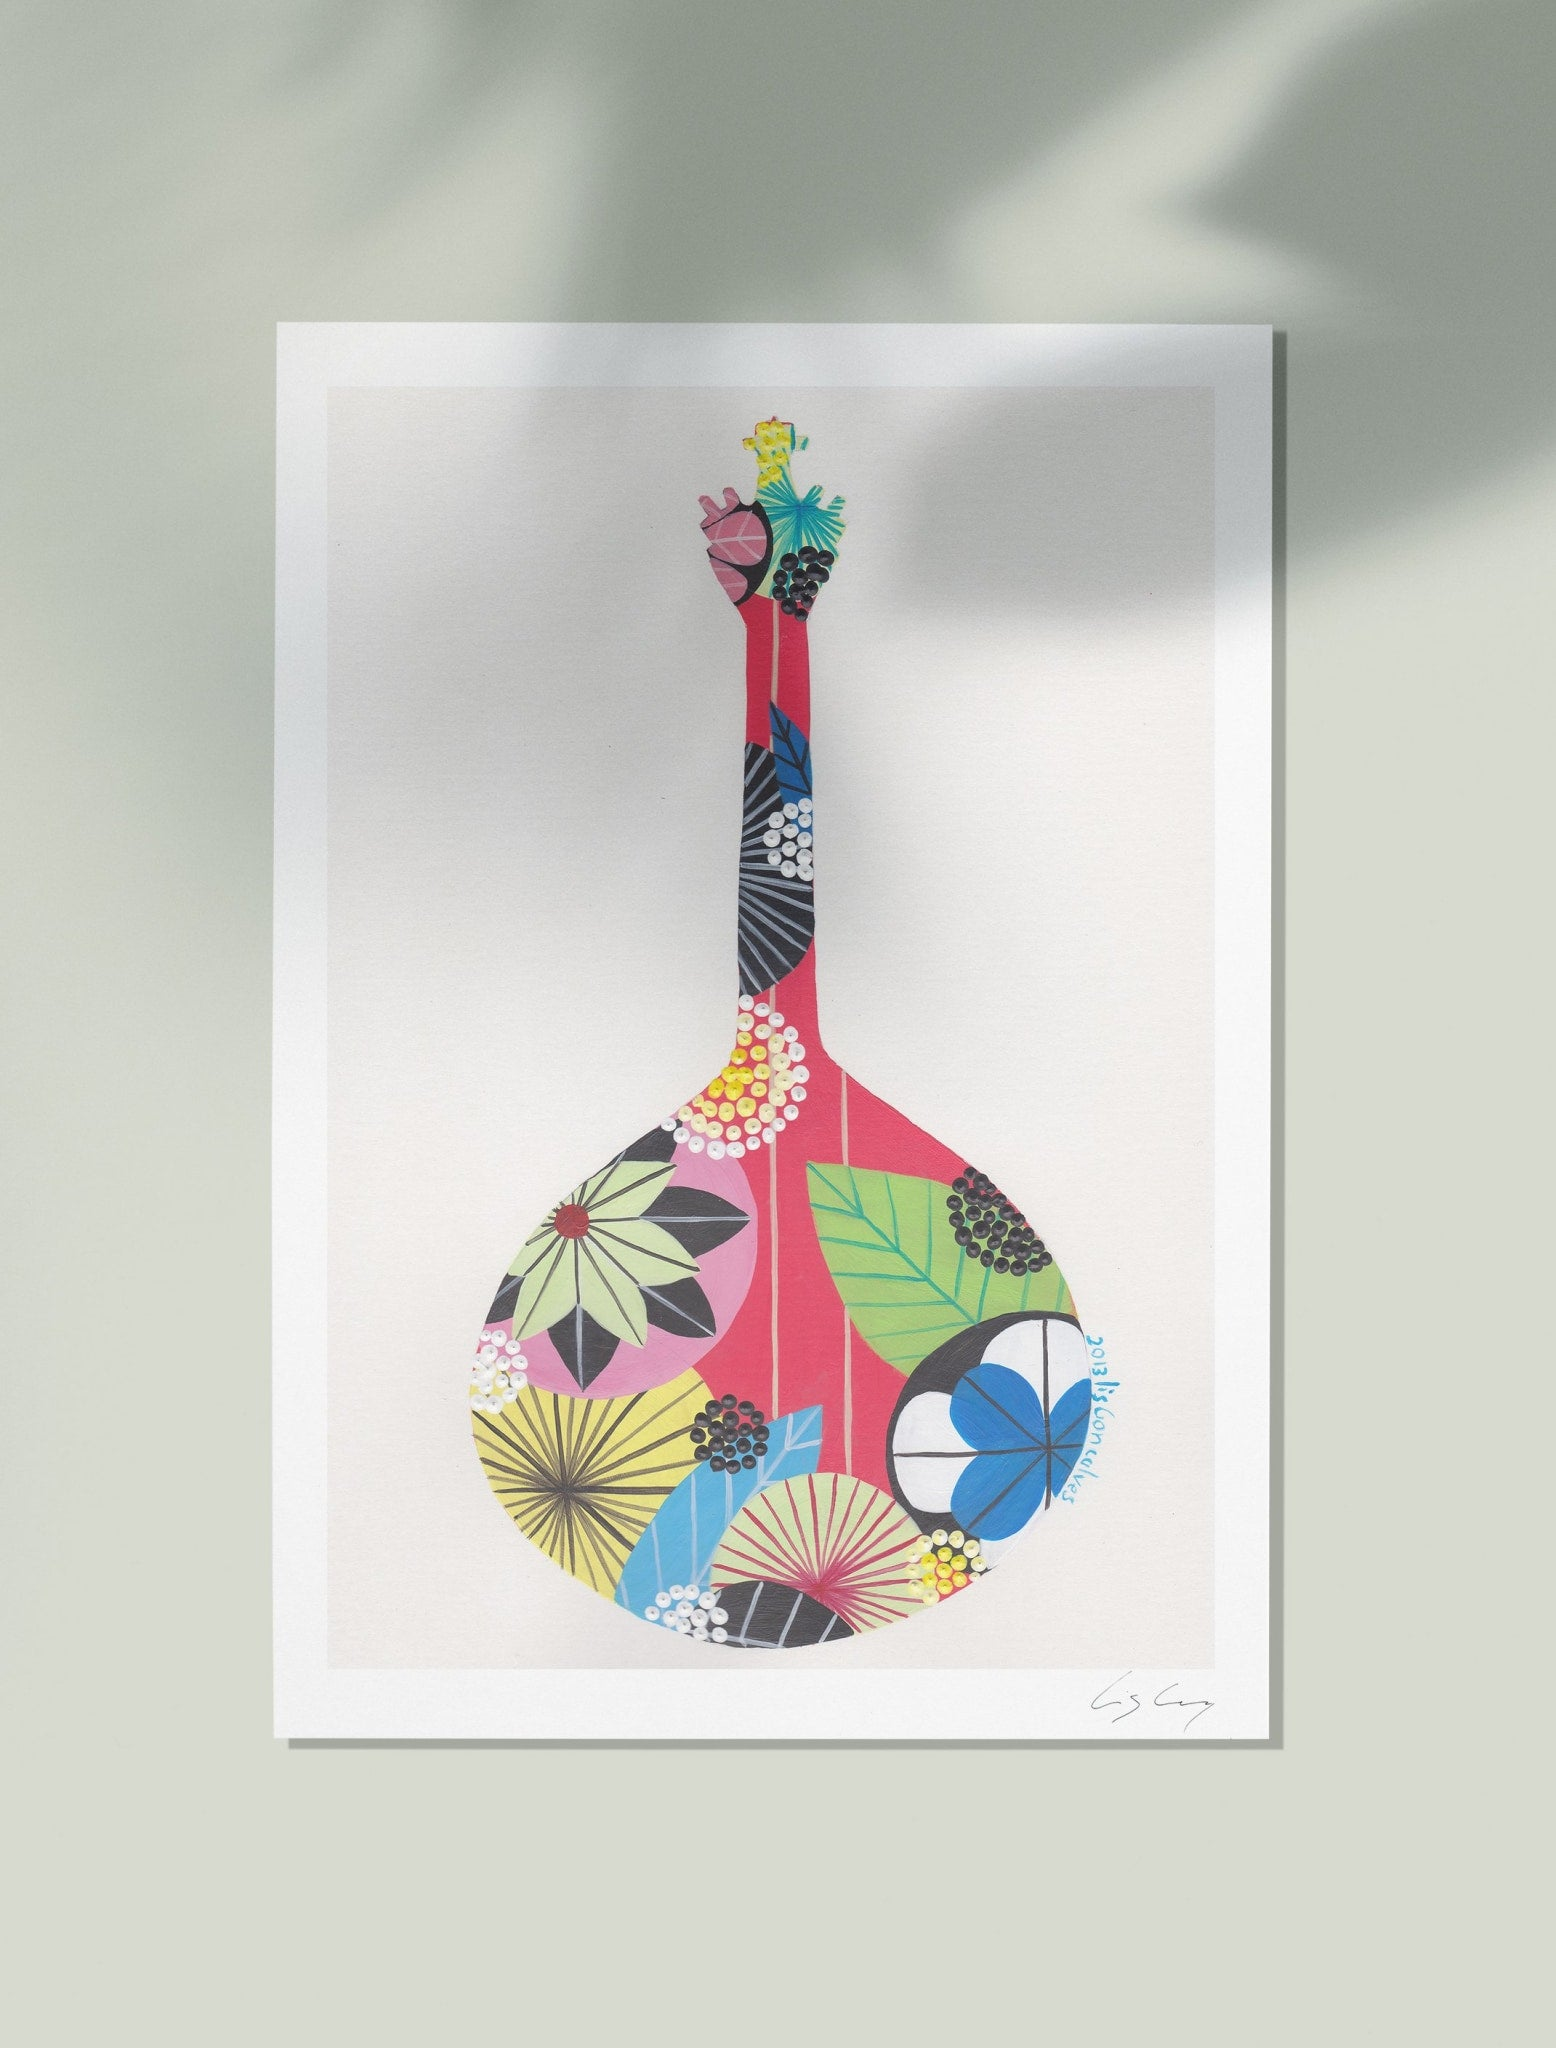 Portuguese Guitar art print in pink by Lis Goncalves